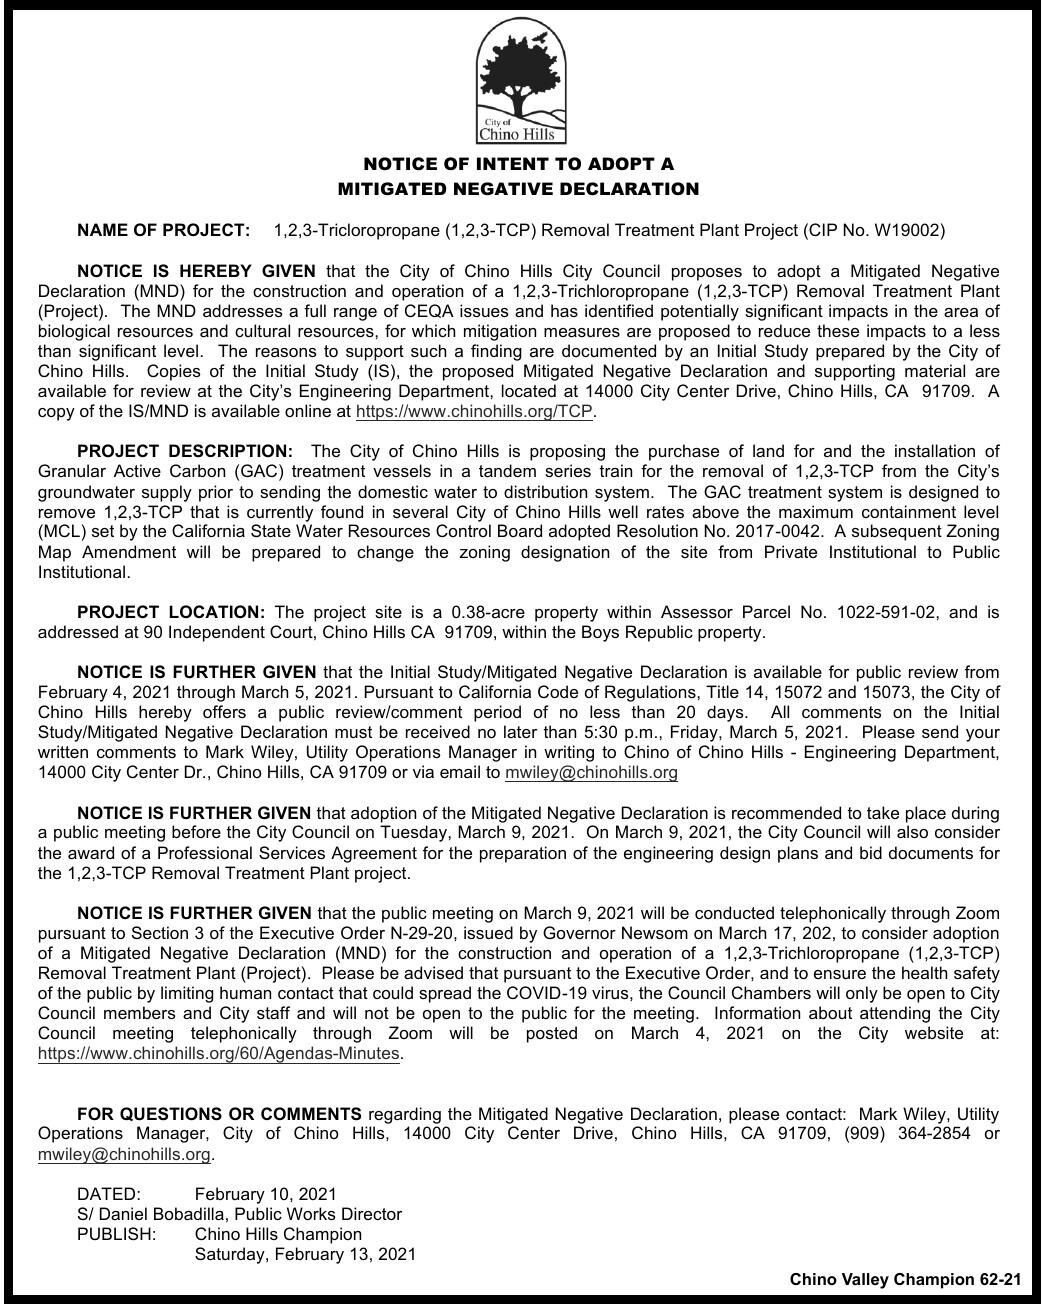 CITY OF CHINO HILLS -   NOTICE OF INTENT TO ADOPT A  MITIGATED NEGATIVE DECLARATION